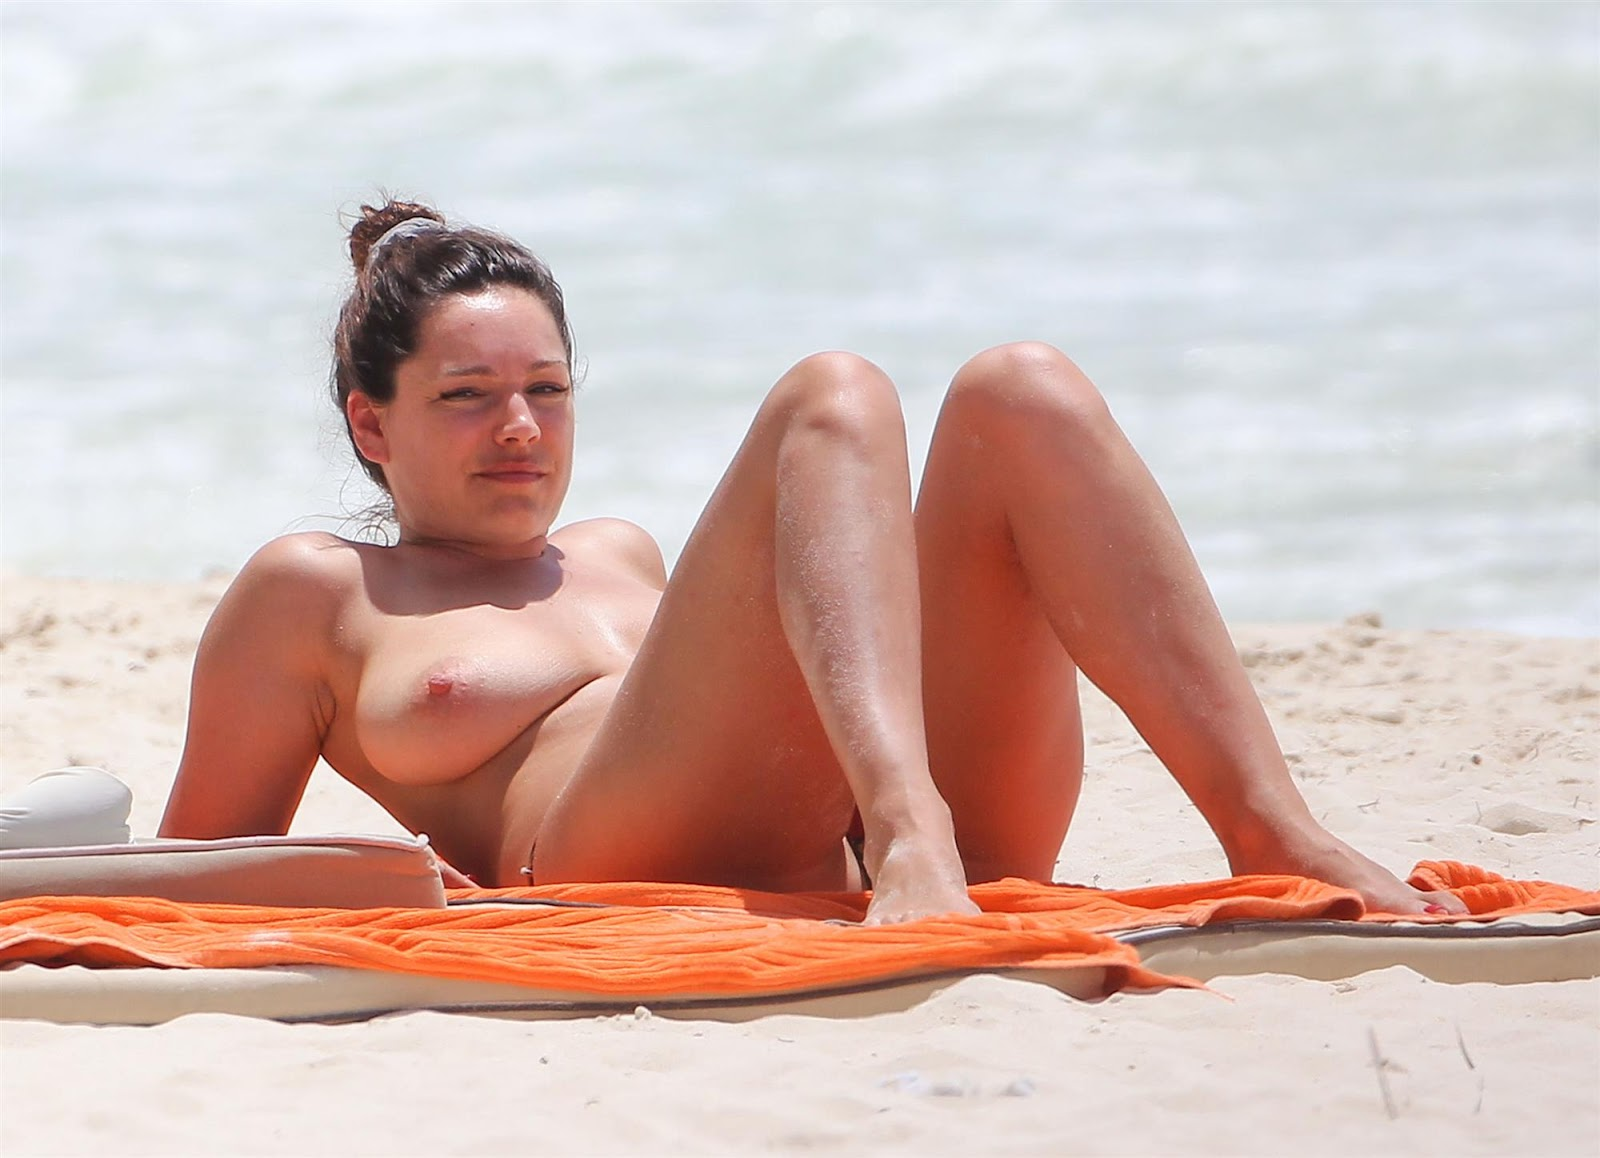 ... Celebs - Oops Upskirt - Sex Tapes - Paparazzi: Kelly Brook Topless